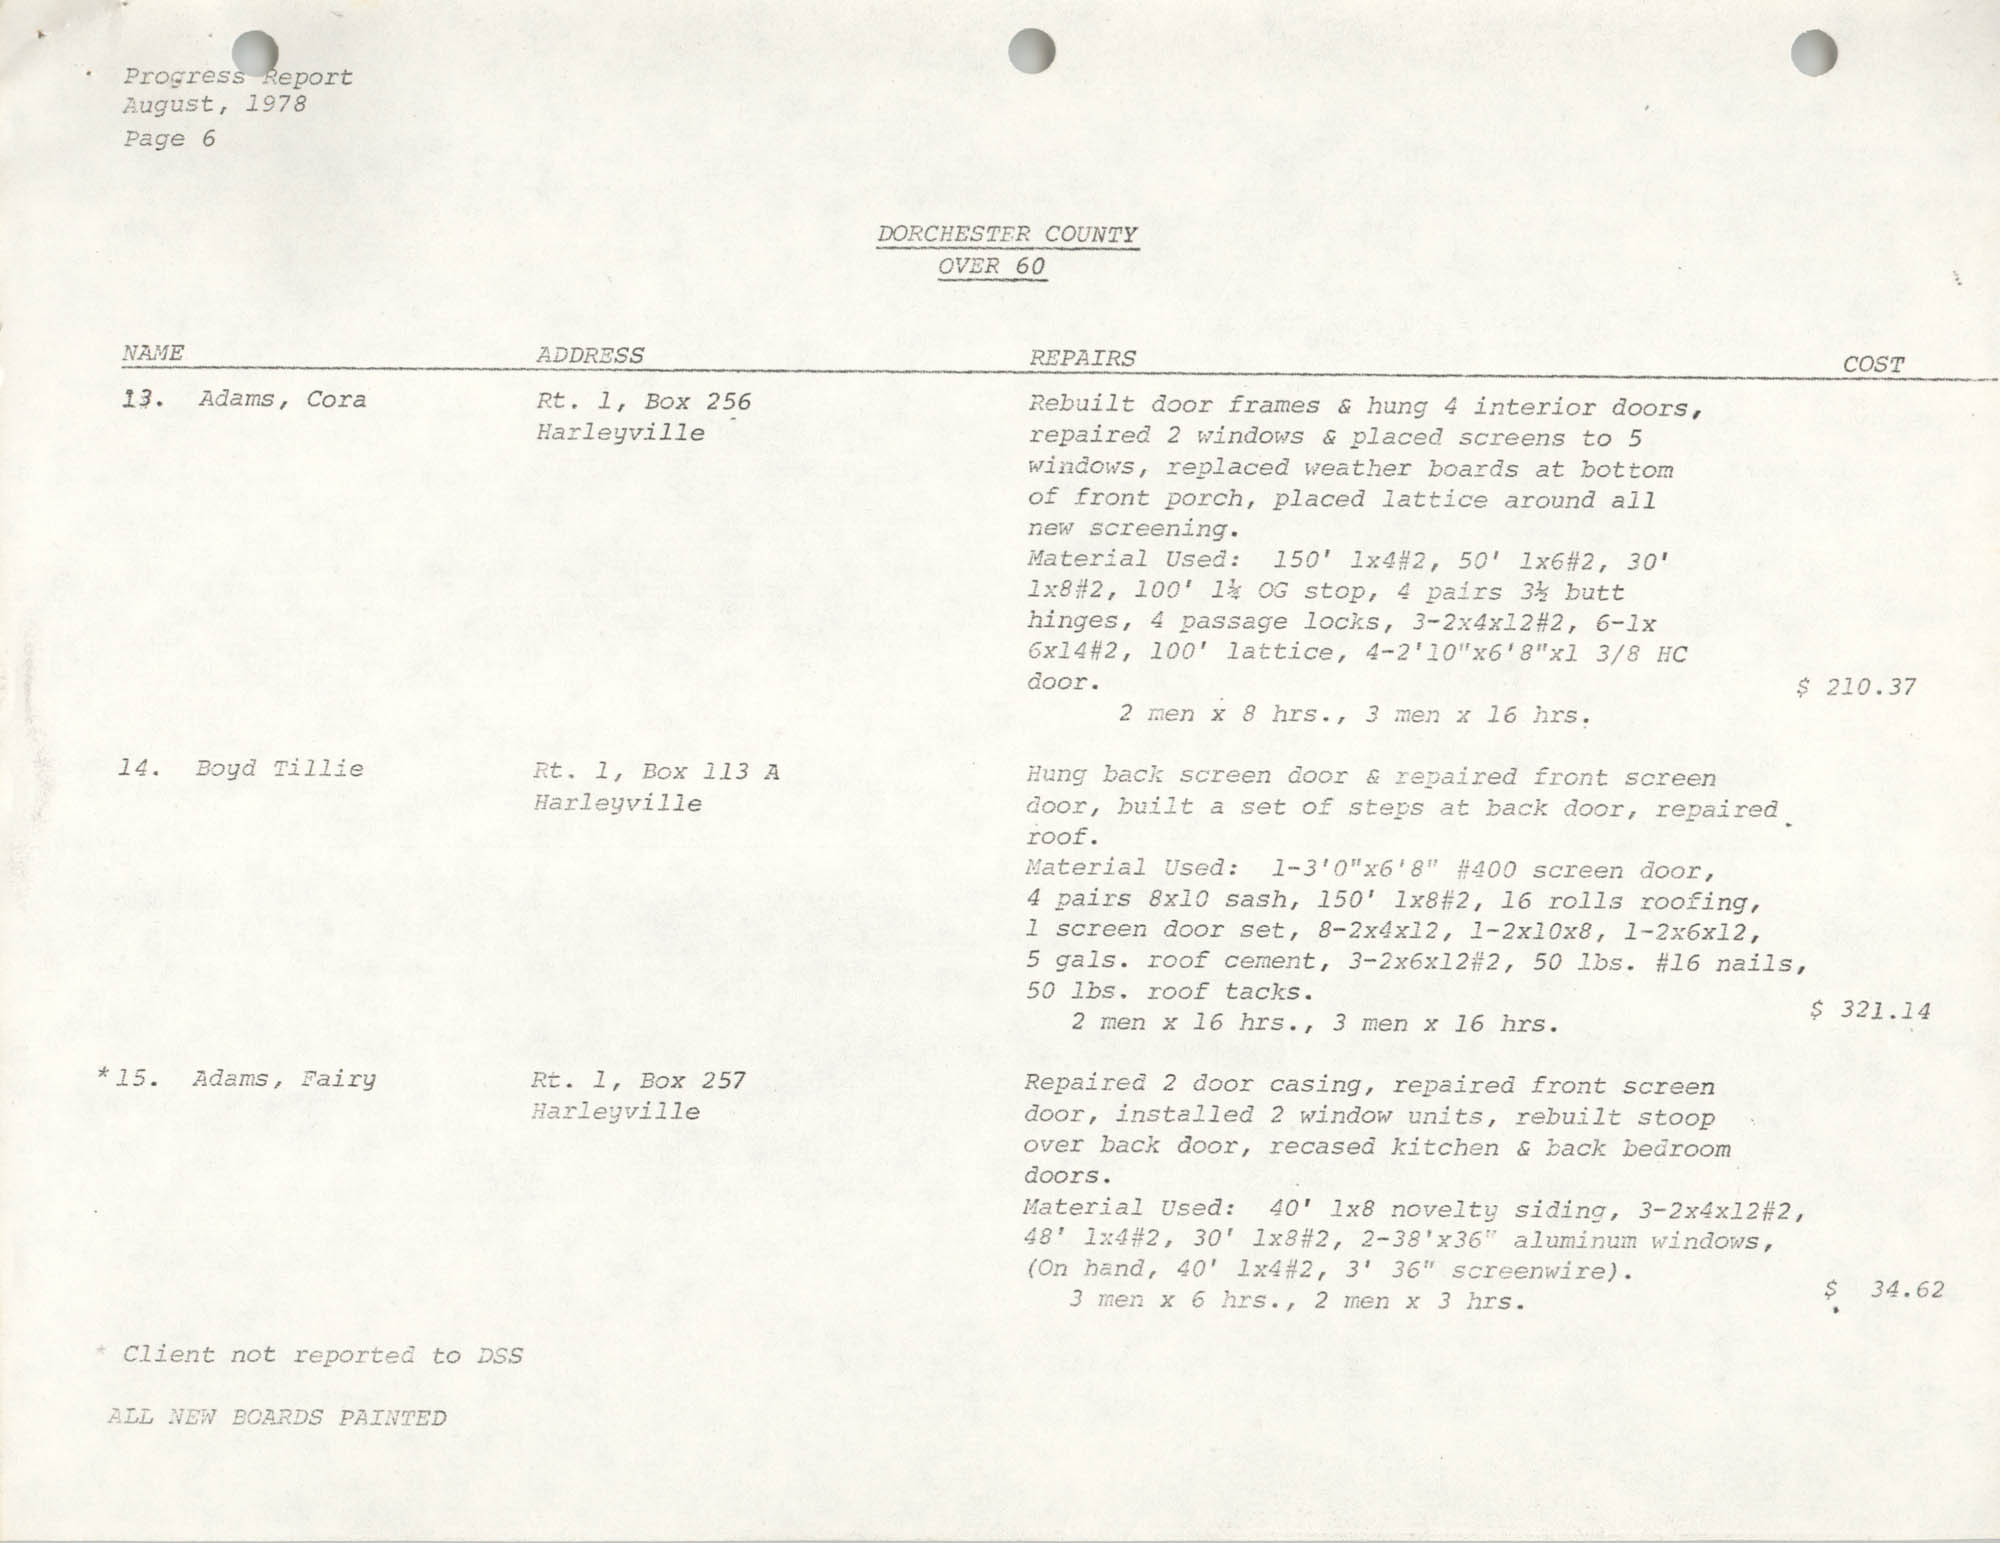 Housing Assistance Program Report, August 1978, Page 6